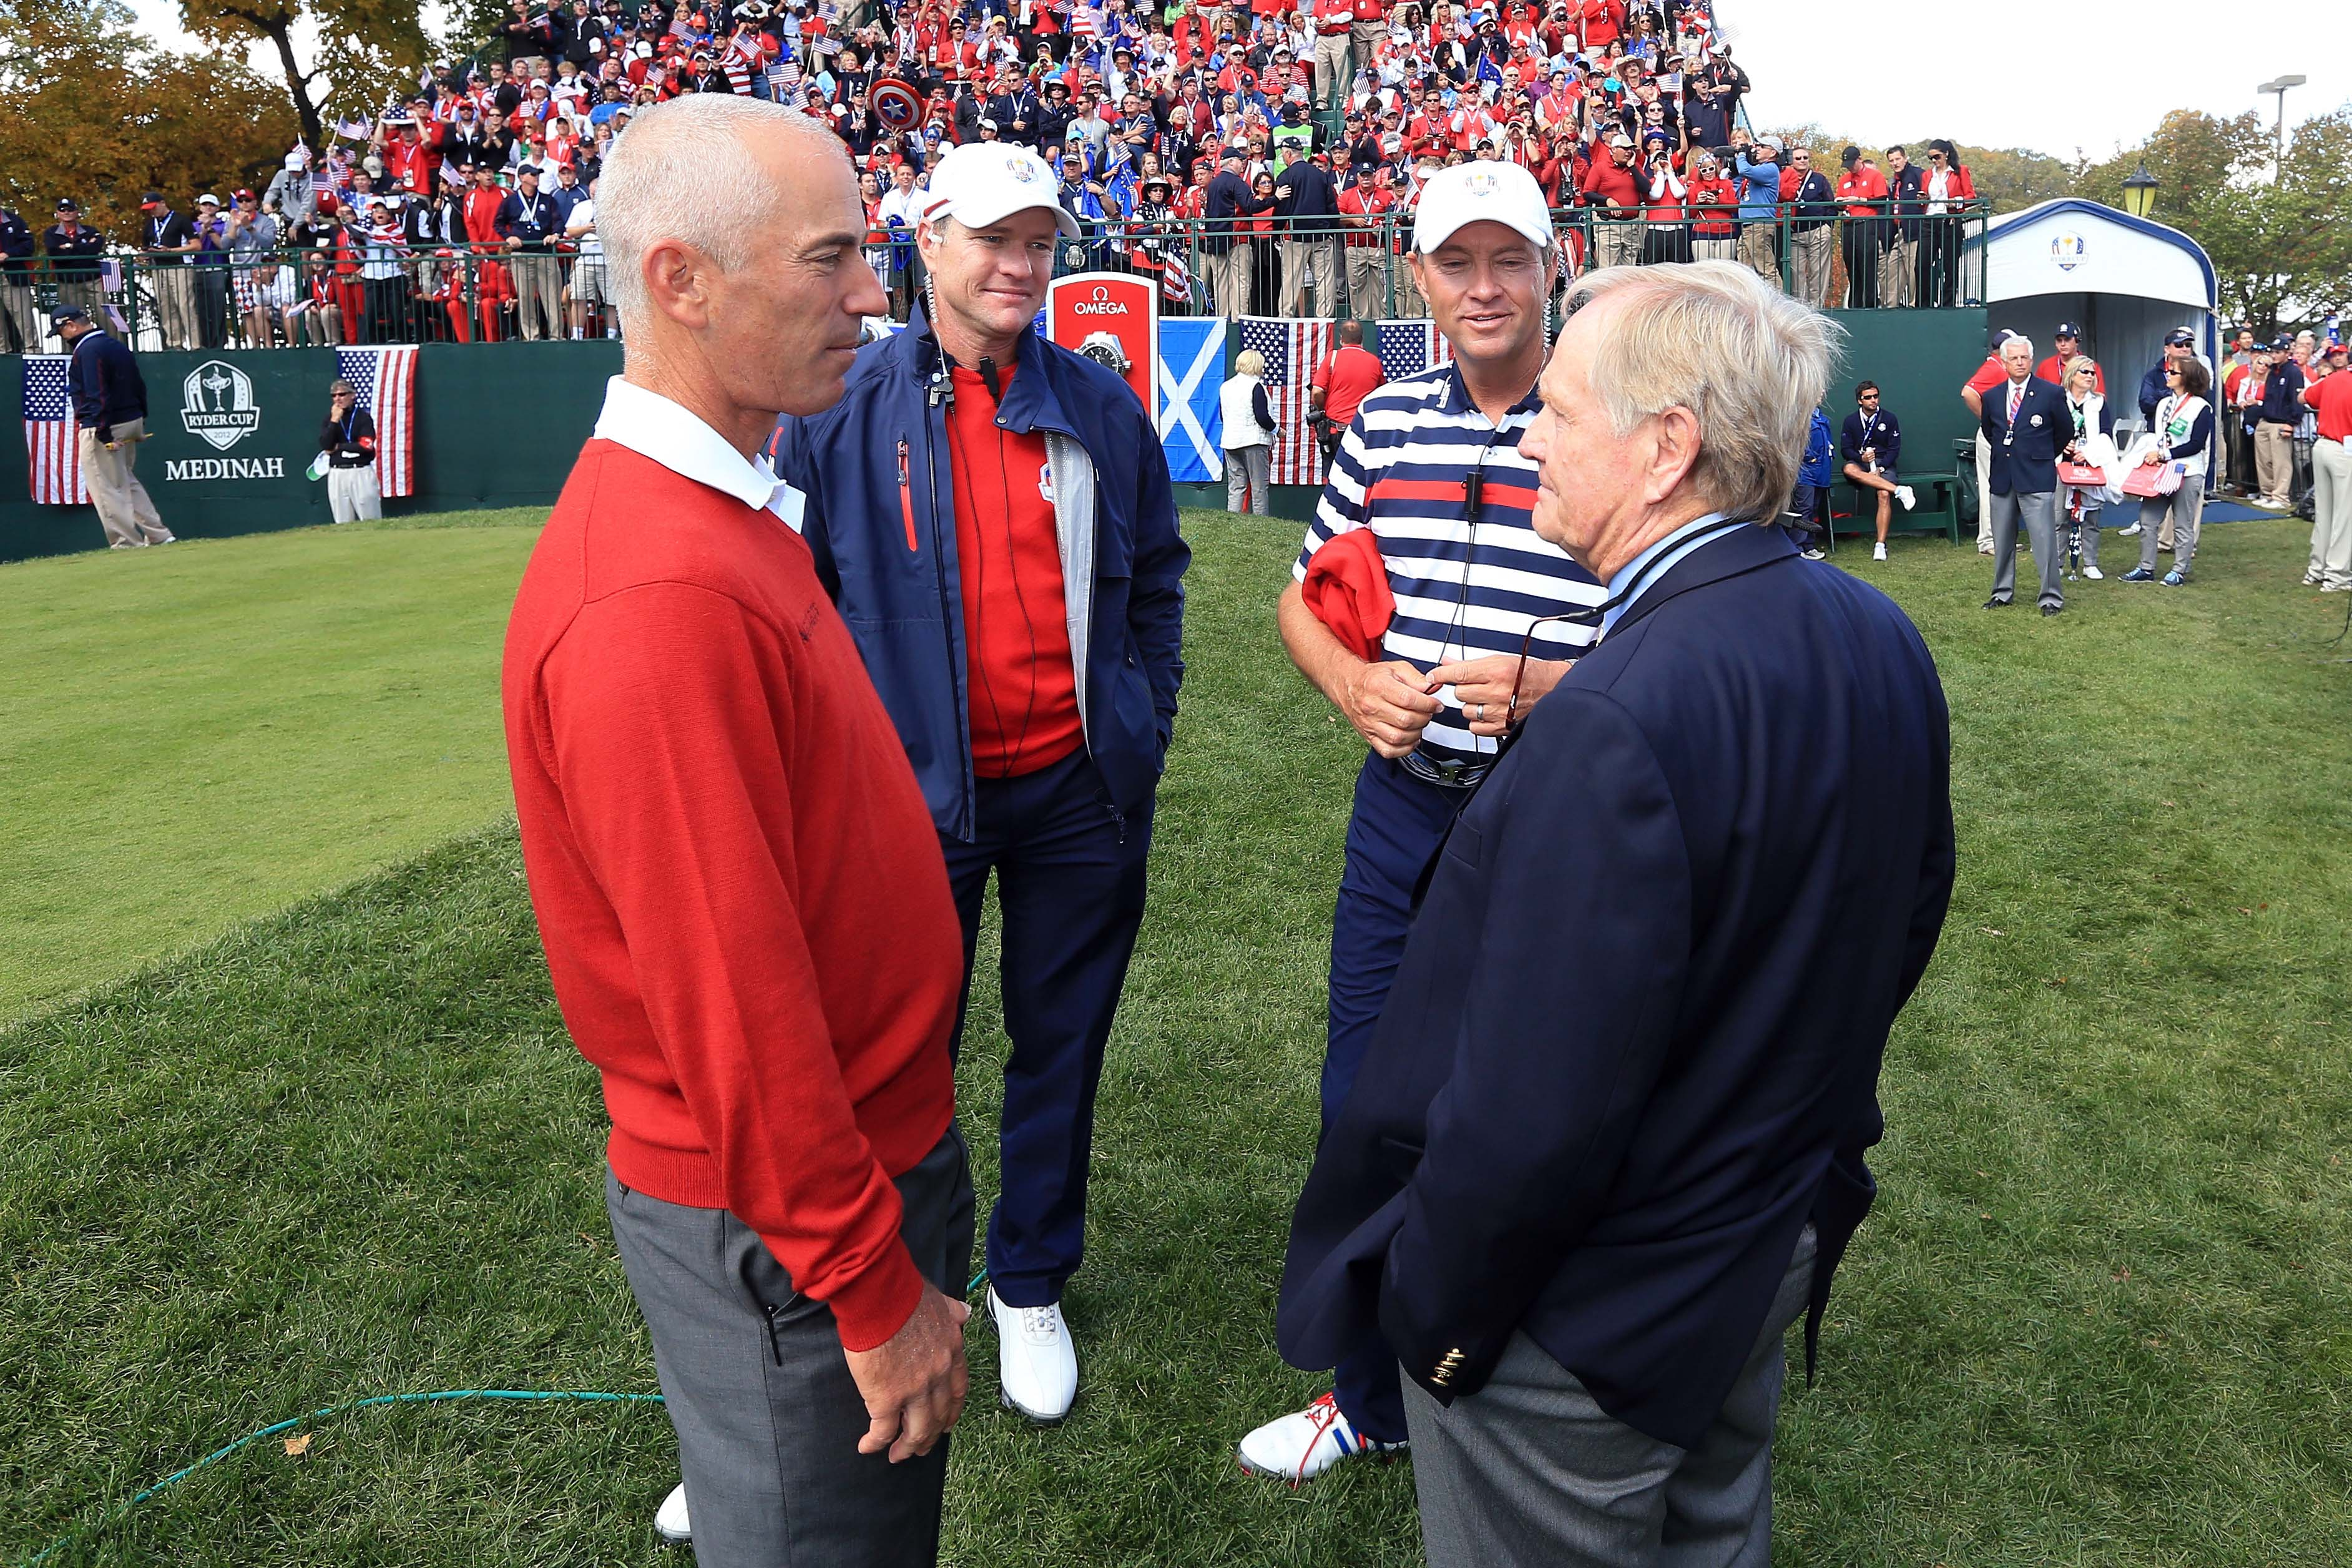 Corey Pavin, Scott Verplank, Davis Love III and Jack Nicklaus